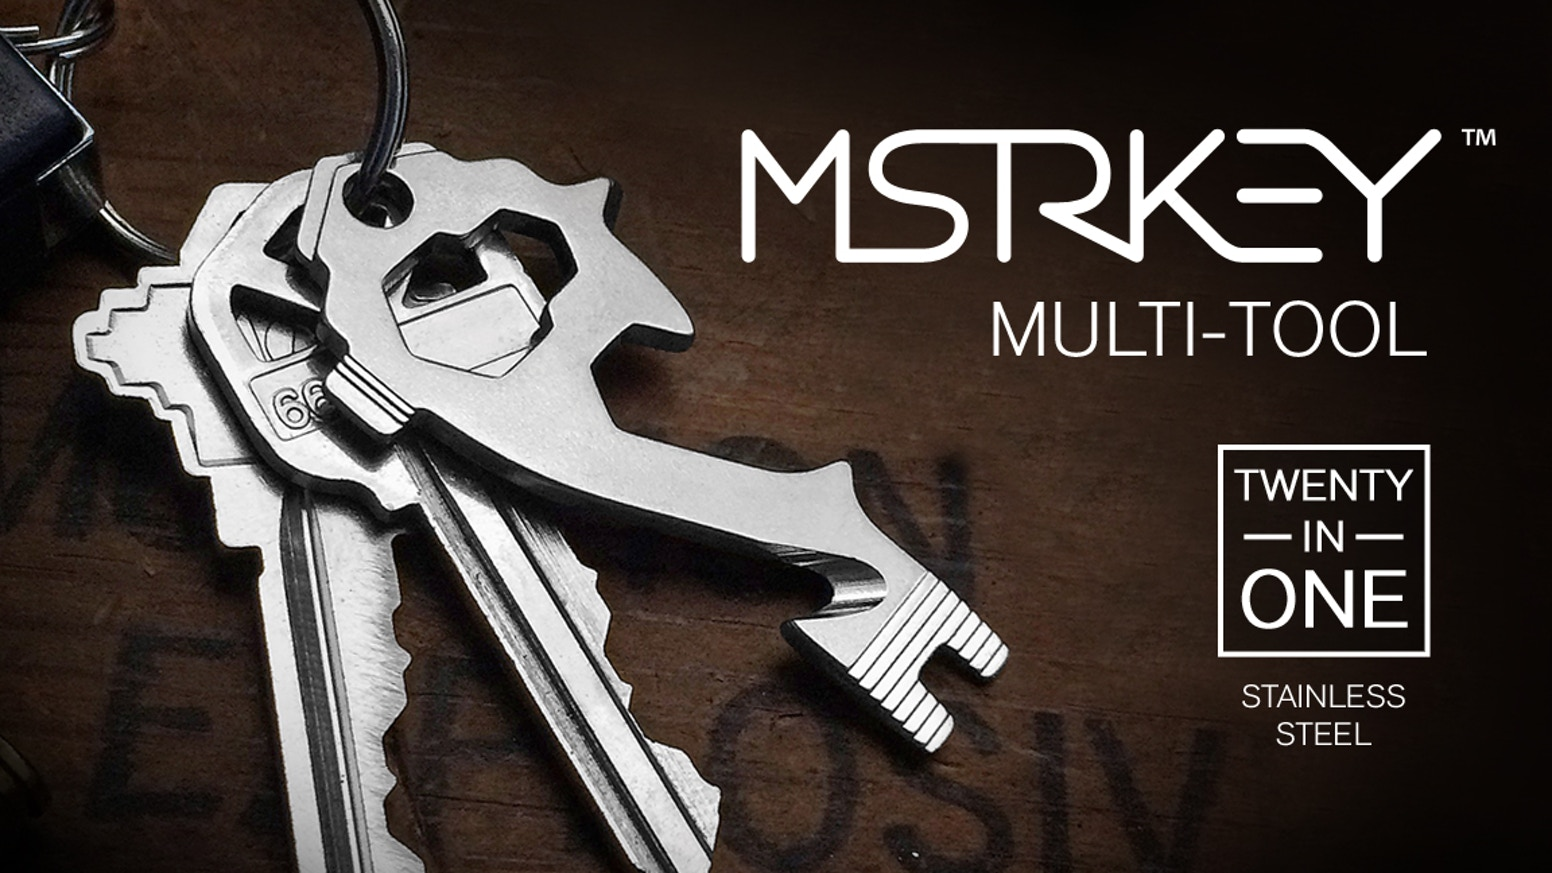 With 20 practical functions, our beautifully crafted key-sized, key-shaped, multitool enhances your everyday carry without adding bulk.